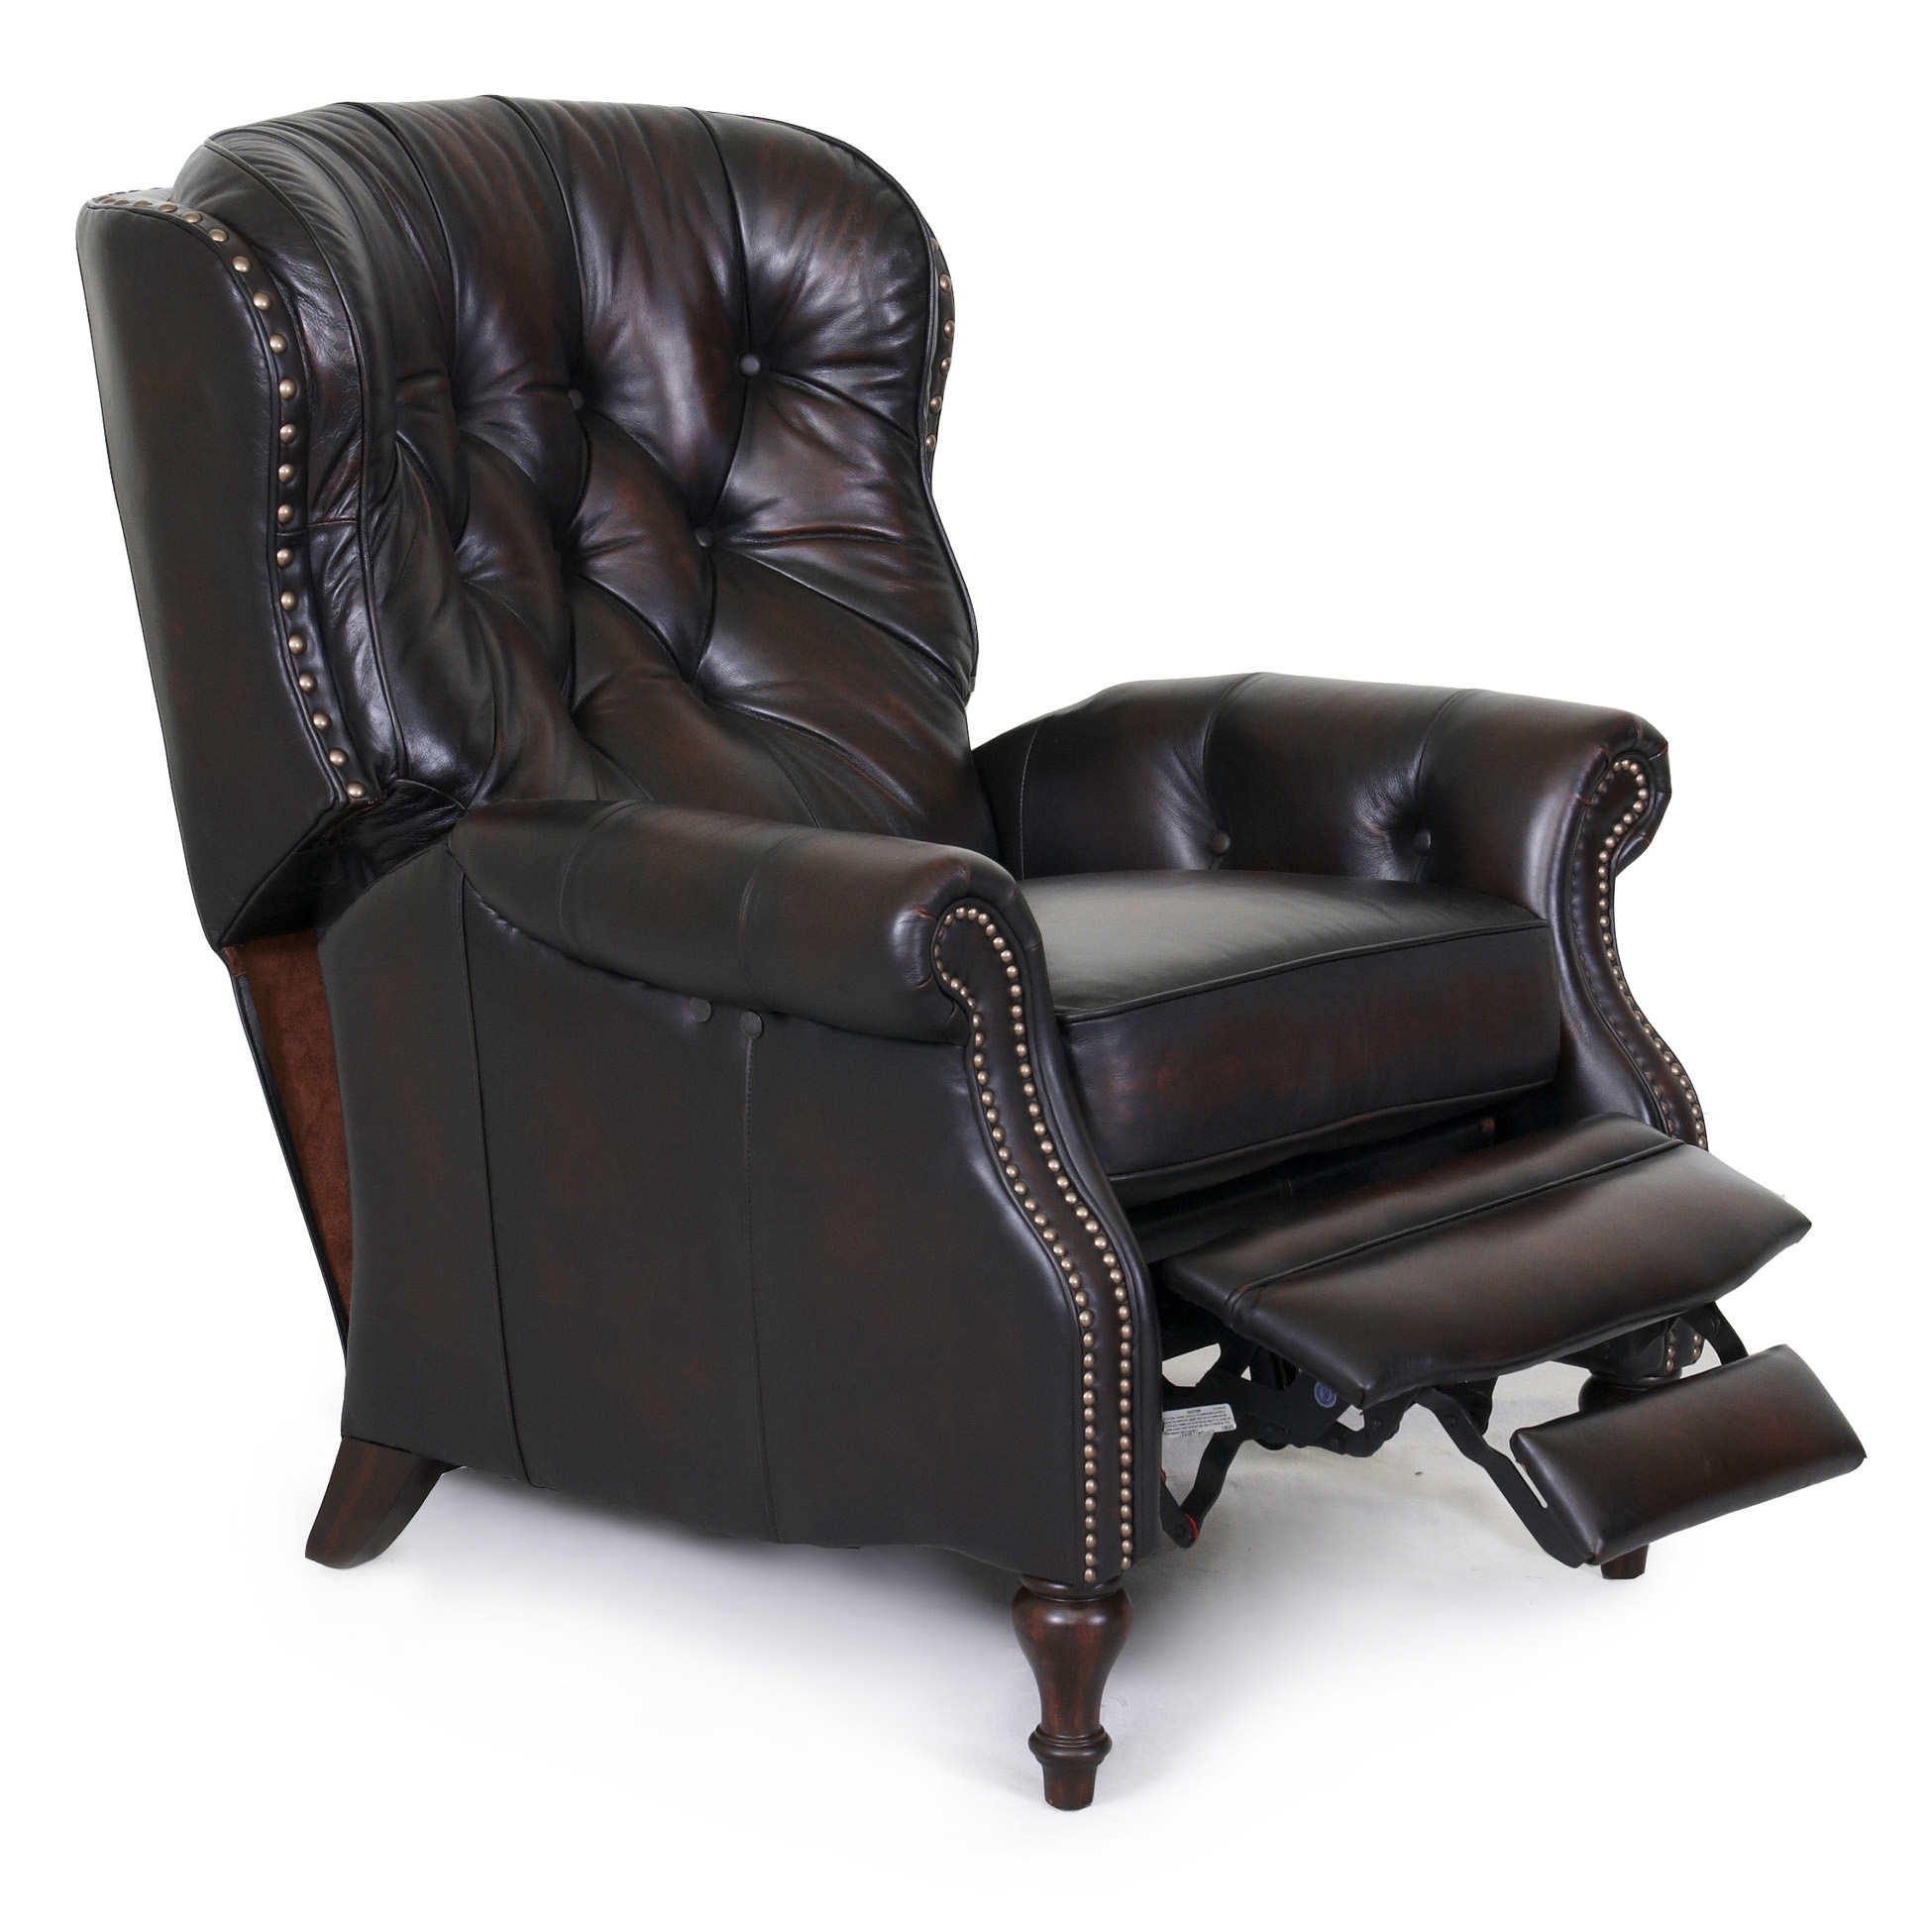 barcalounger kendall ii recliner chair leather recliner chair furniture lounge chair. Black Bedroom Furniture Sets. Home Design Ideas